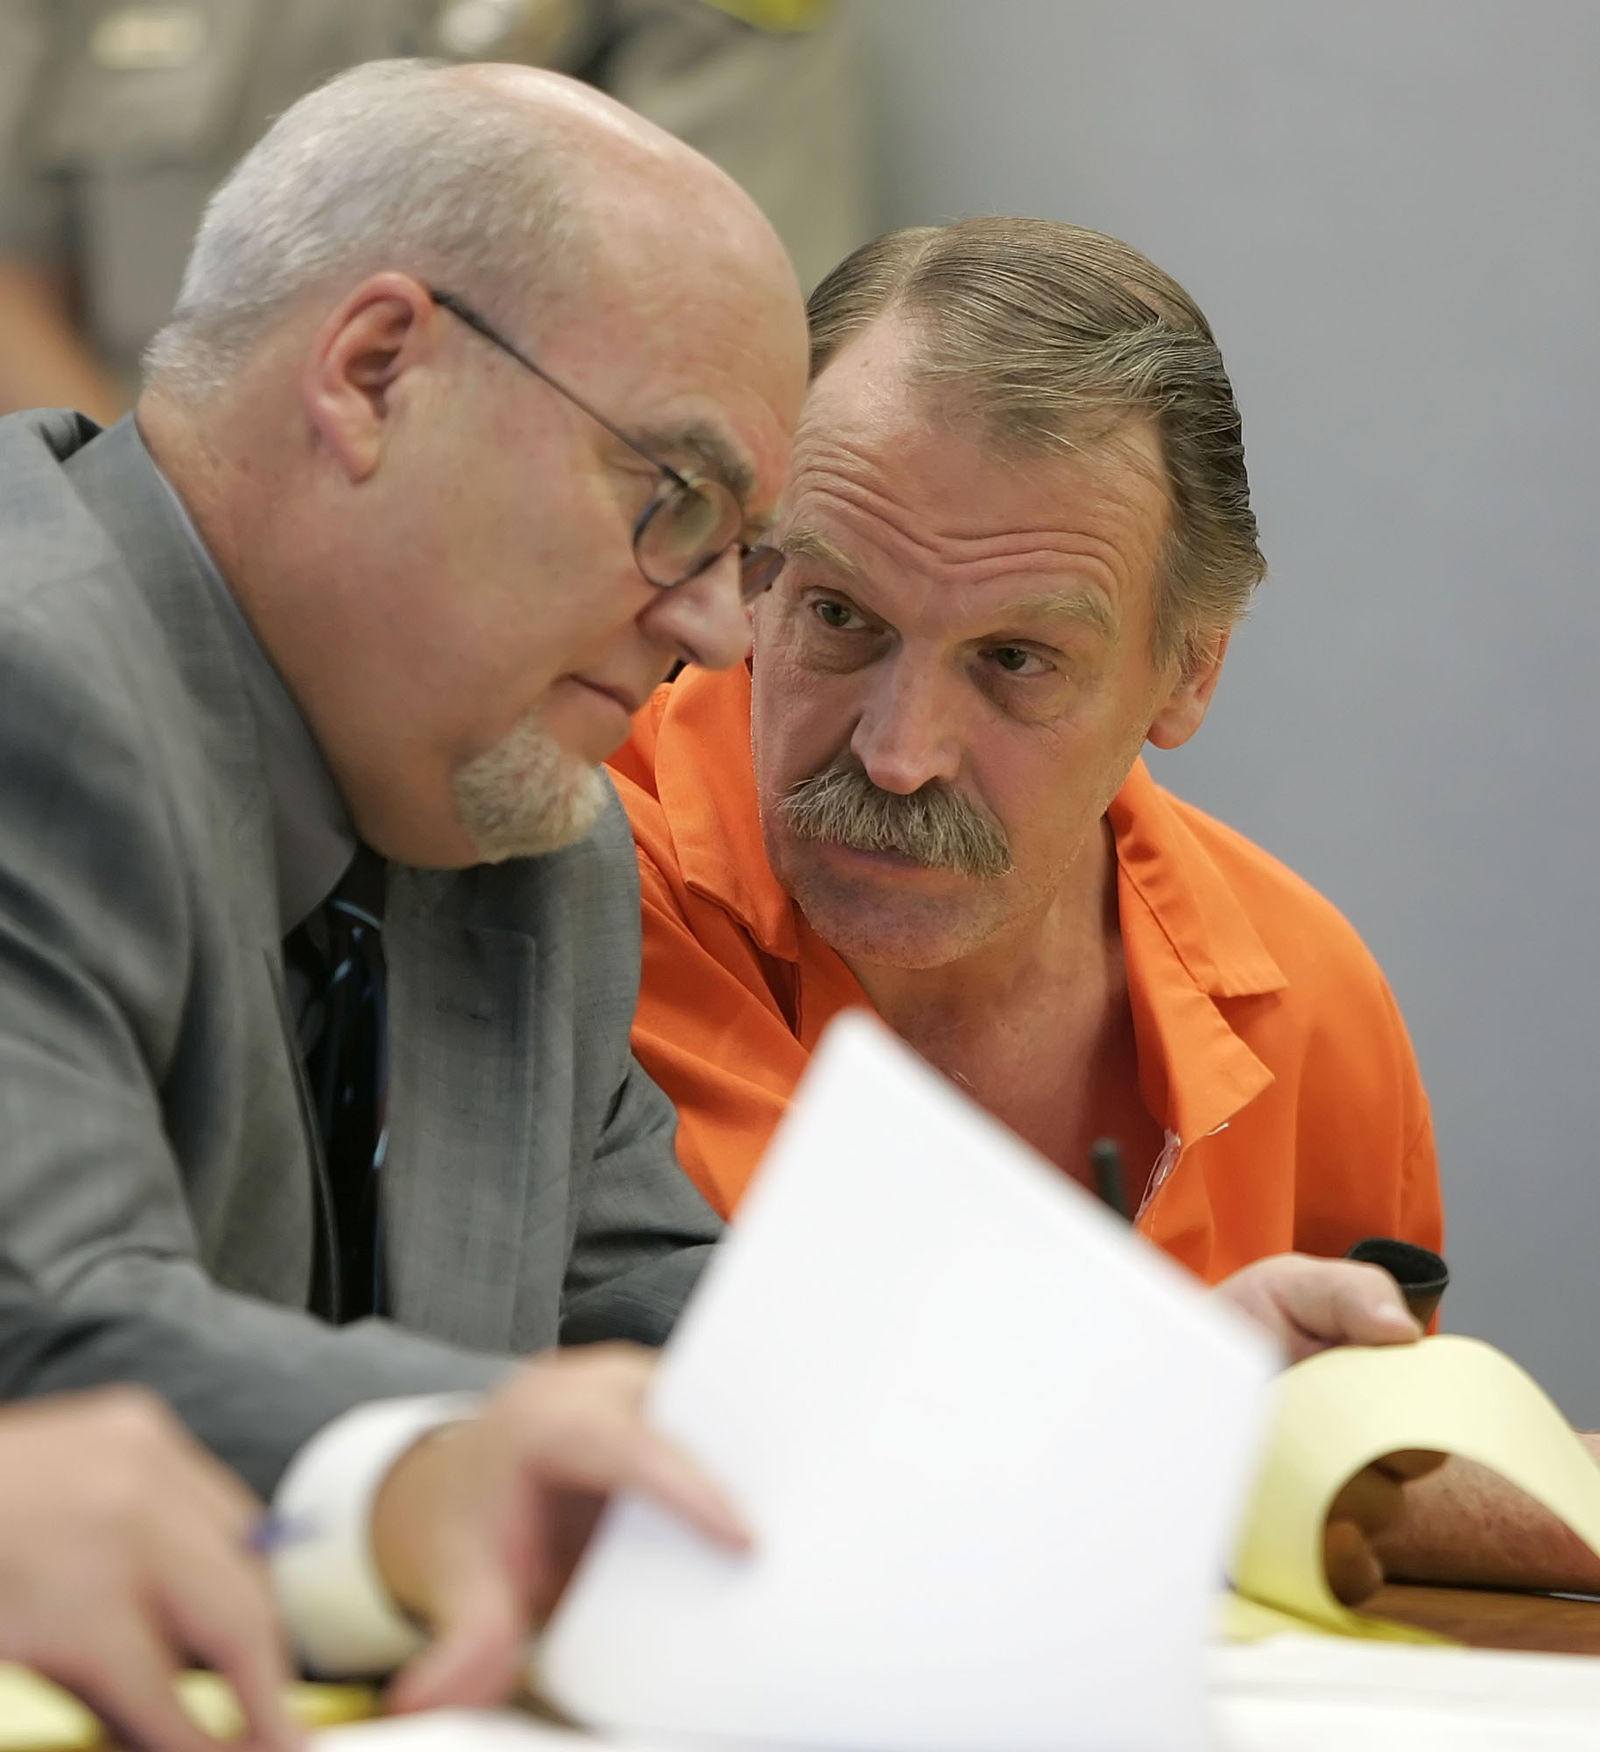 "FILE - In this Oct. 6, 2005, file photo, Ron Lafferty, right, confers with his attorney Bill Morrison at his court hearing in the 4th District Courtroom of Judge Anthony Schofield in Provo, Utah. Utah prison officials said Monday, Nov. 11, 2019, that Lafferty, a death-row inmate whose double-murder case was featured in the book ""Under the Banner of Heaven"" and who was nearing an execution by firing squad, has died of natural causes. (AP Photo/George Frey, File)"